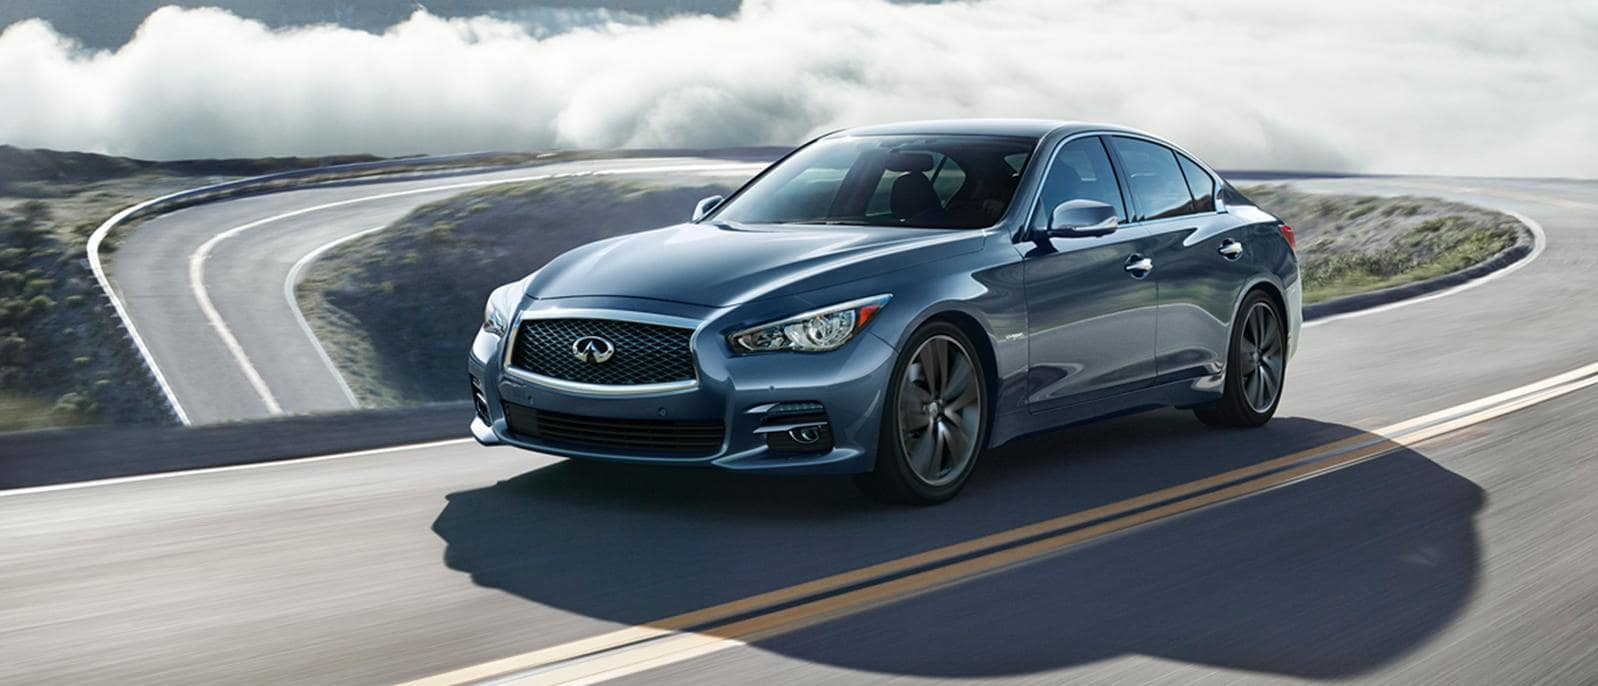 USED 2017 INFINITI Q50 FOR SALE IN CHICAGO, IL